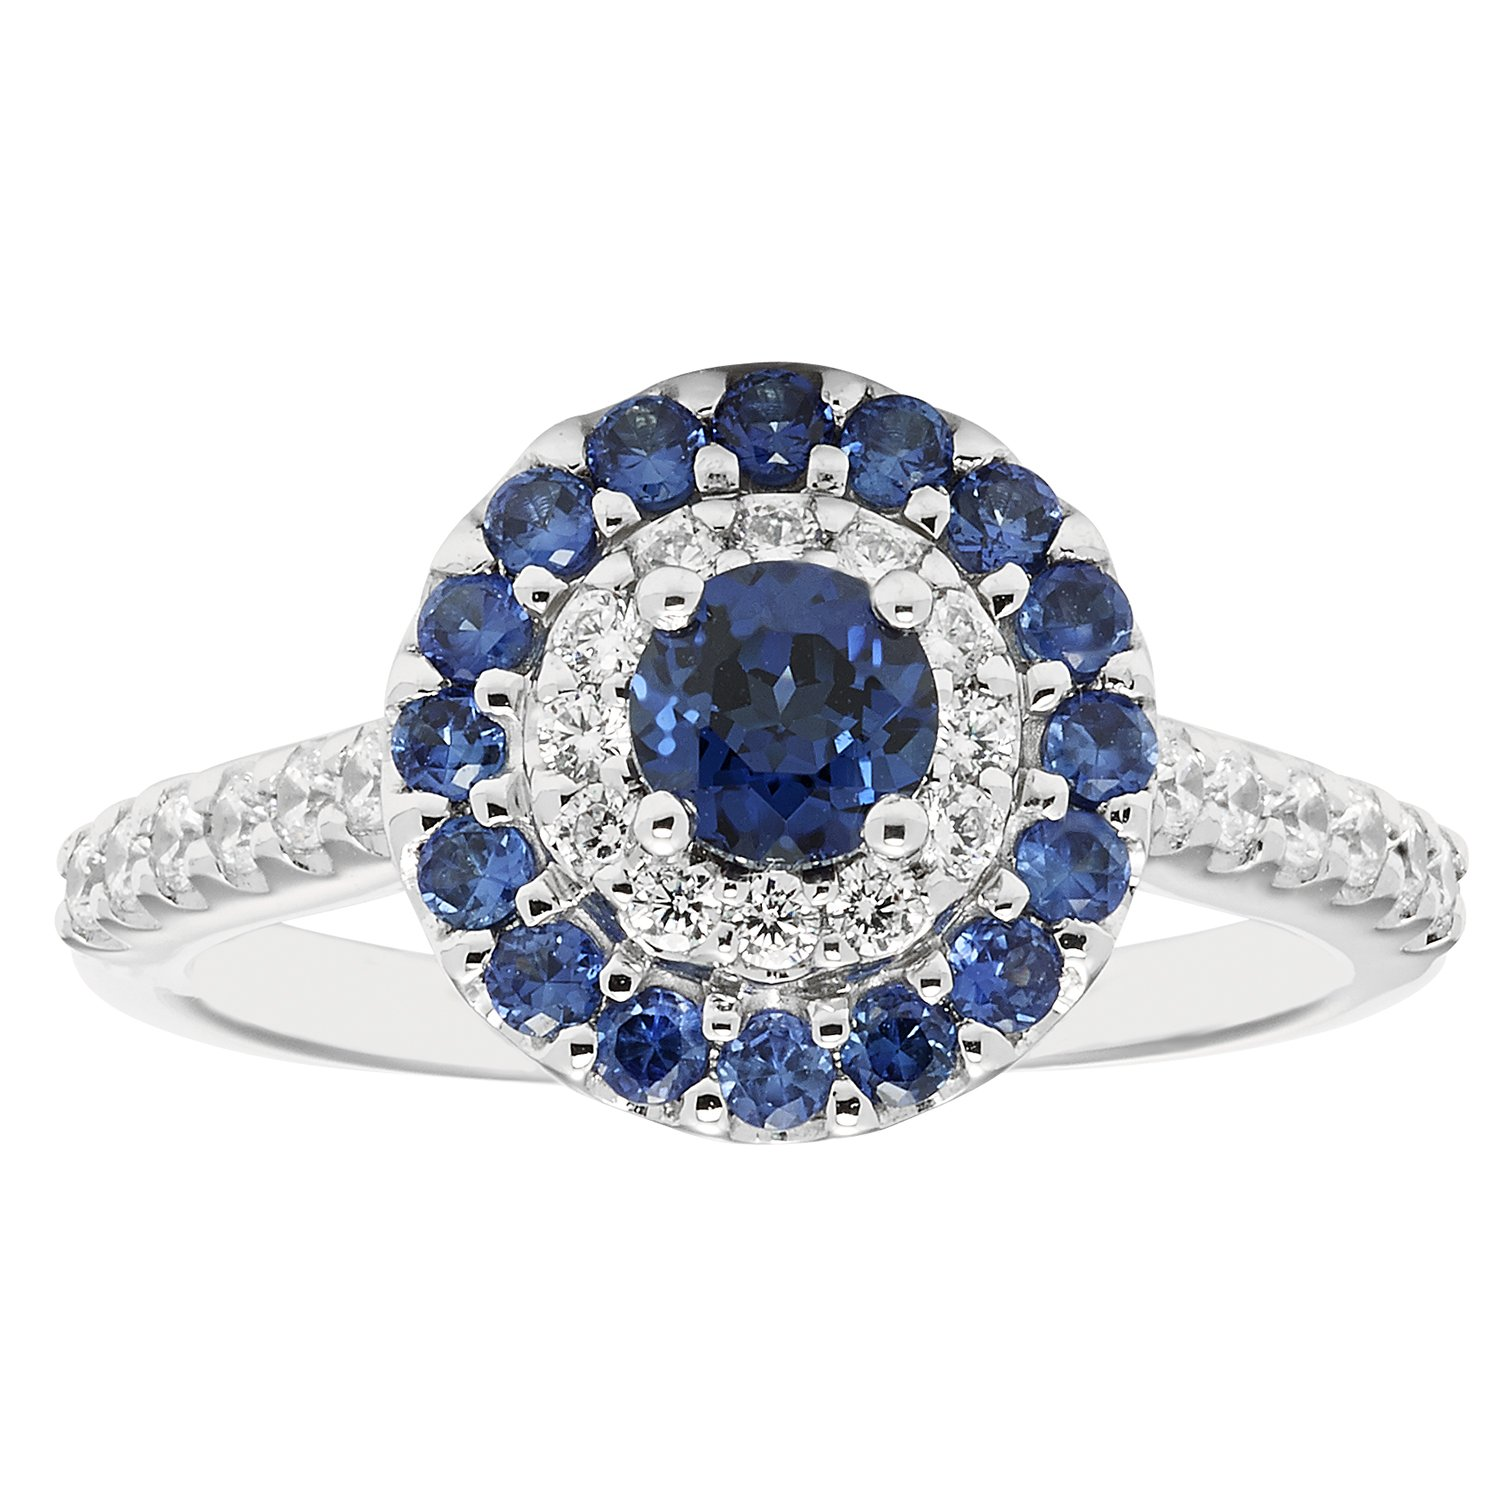 14K White Gold Genuine Blue Sapphire & Diamond Double Halo Bridal Engagement Ring (1.19 ctw, I Color, I1 Clarity)